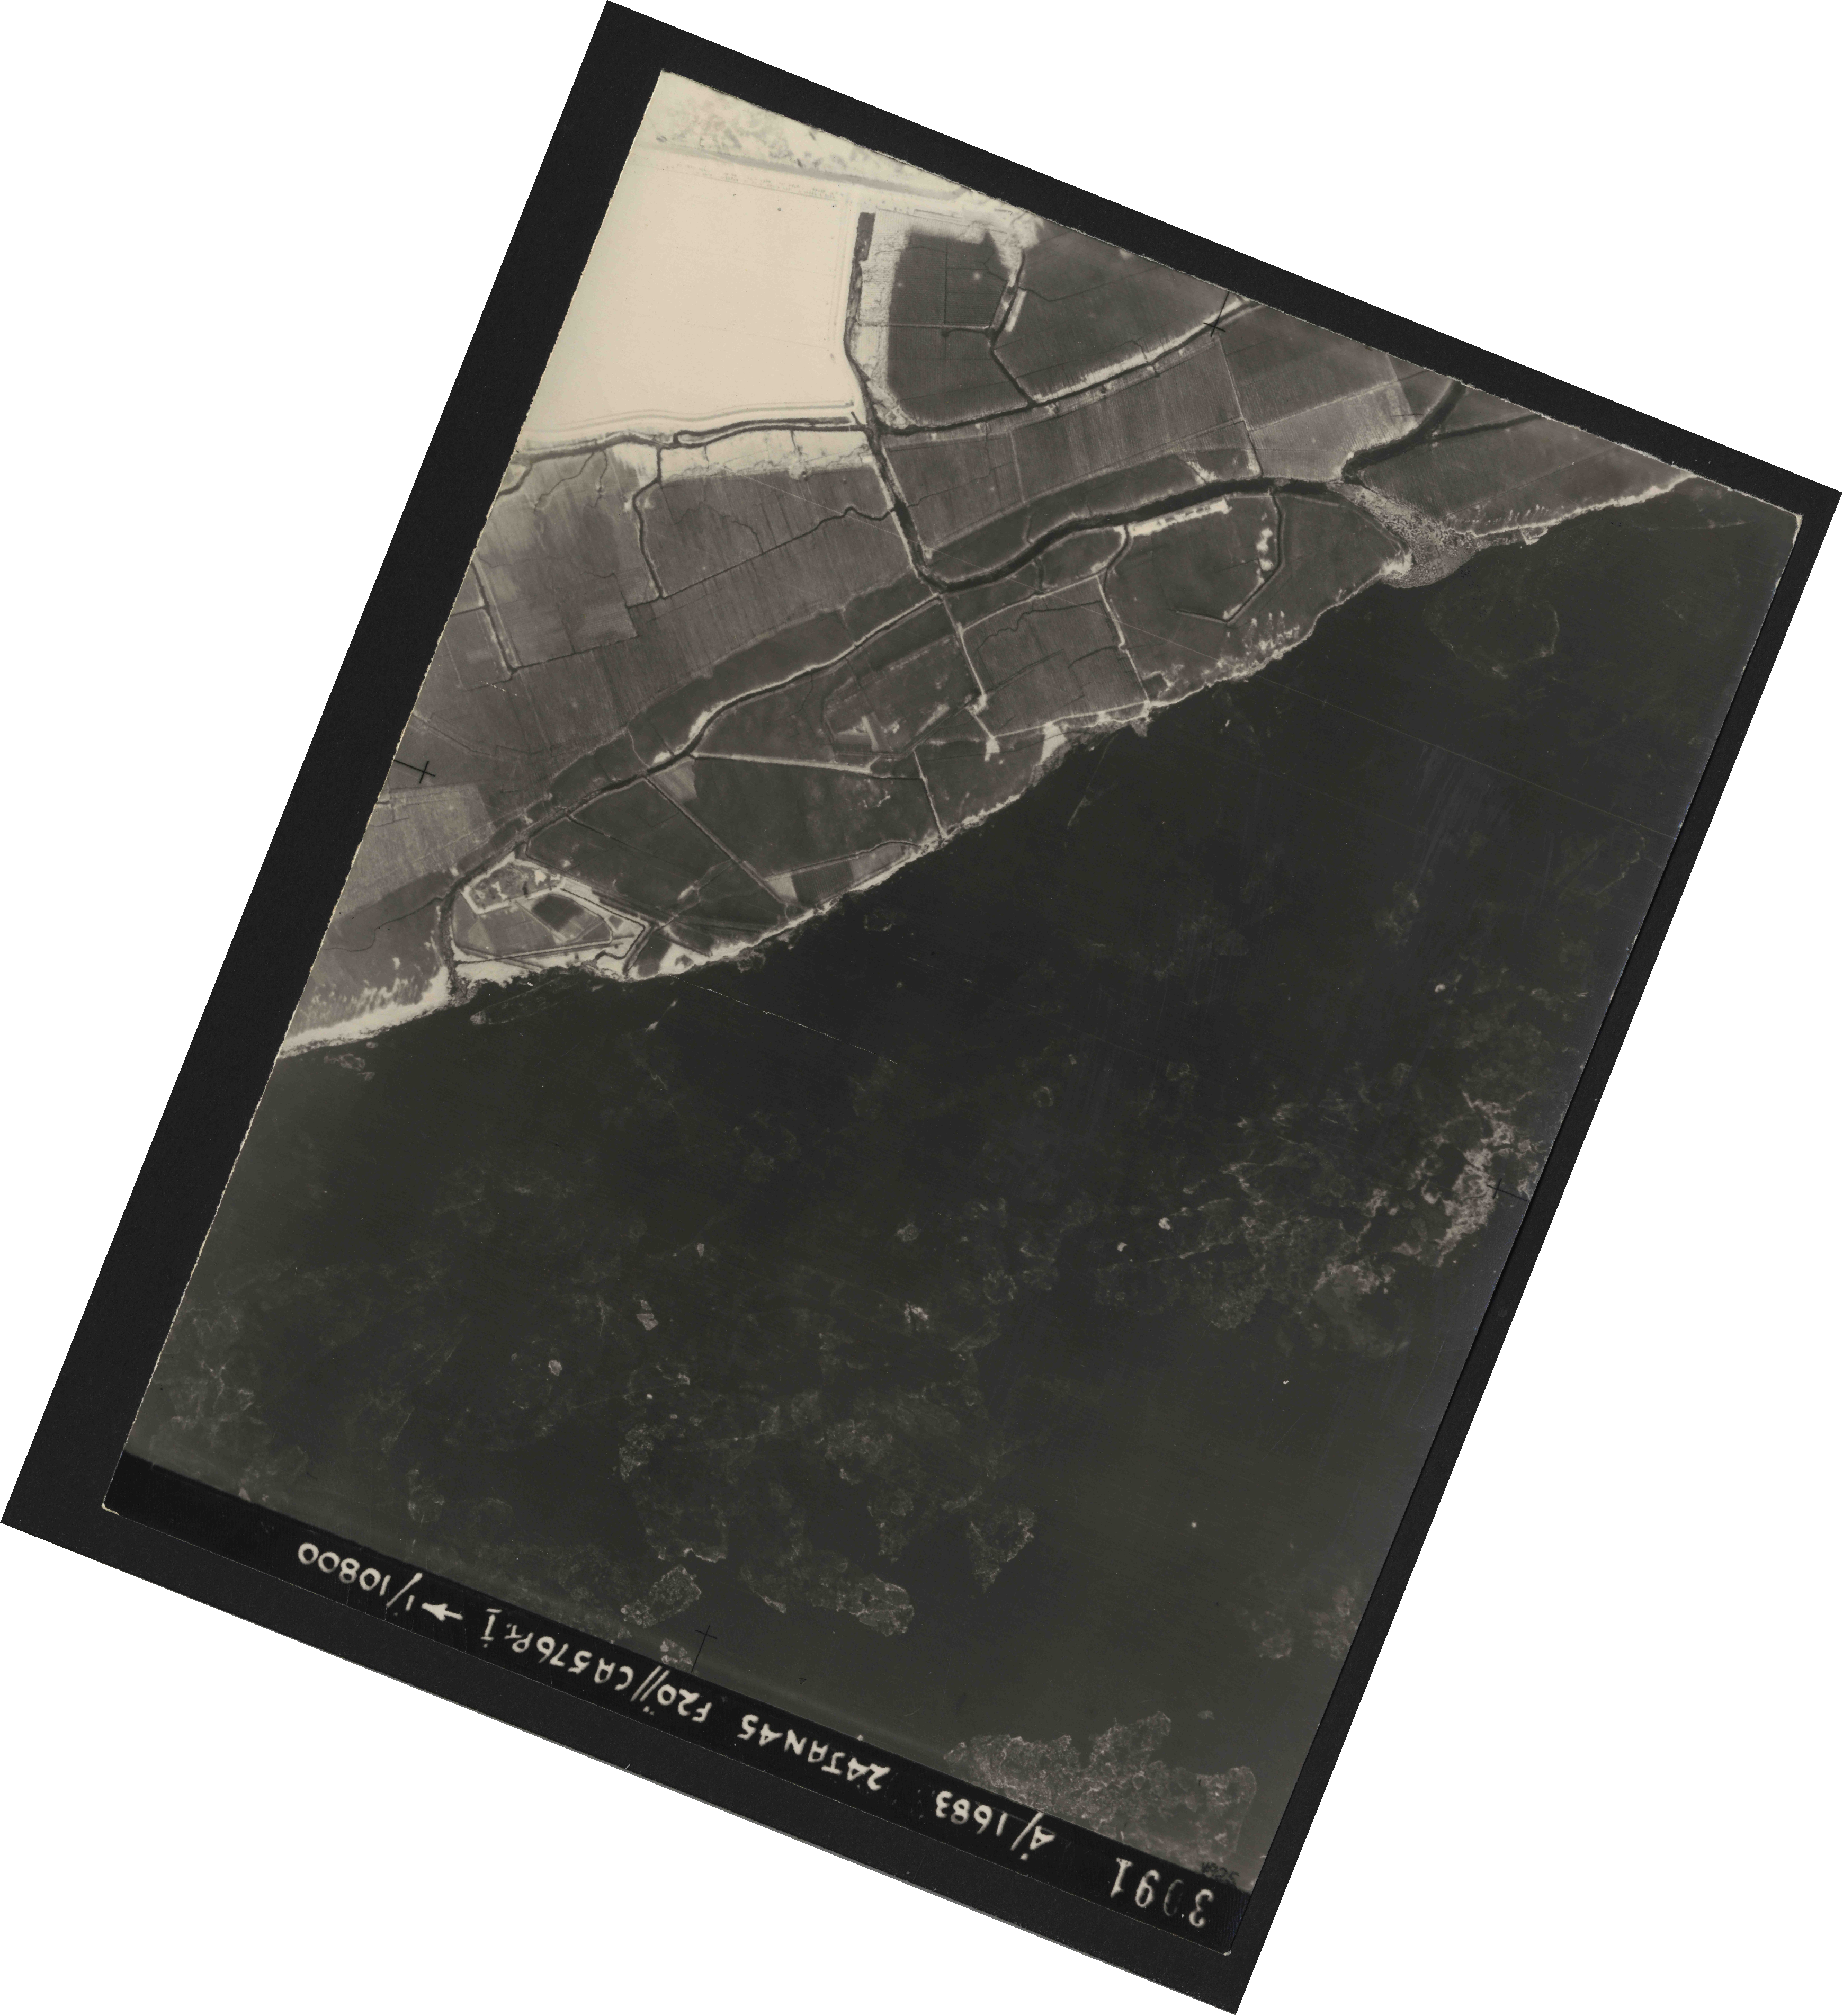 Collection RAF aerial photos 1940-1945 - flight 268, run 07, photo 3091